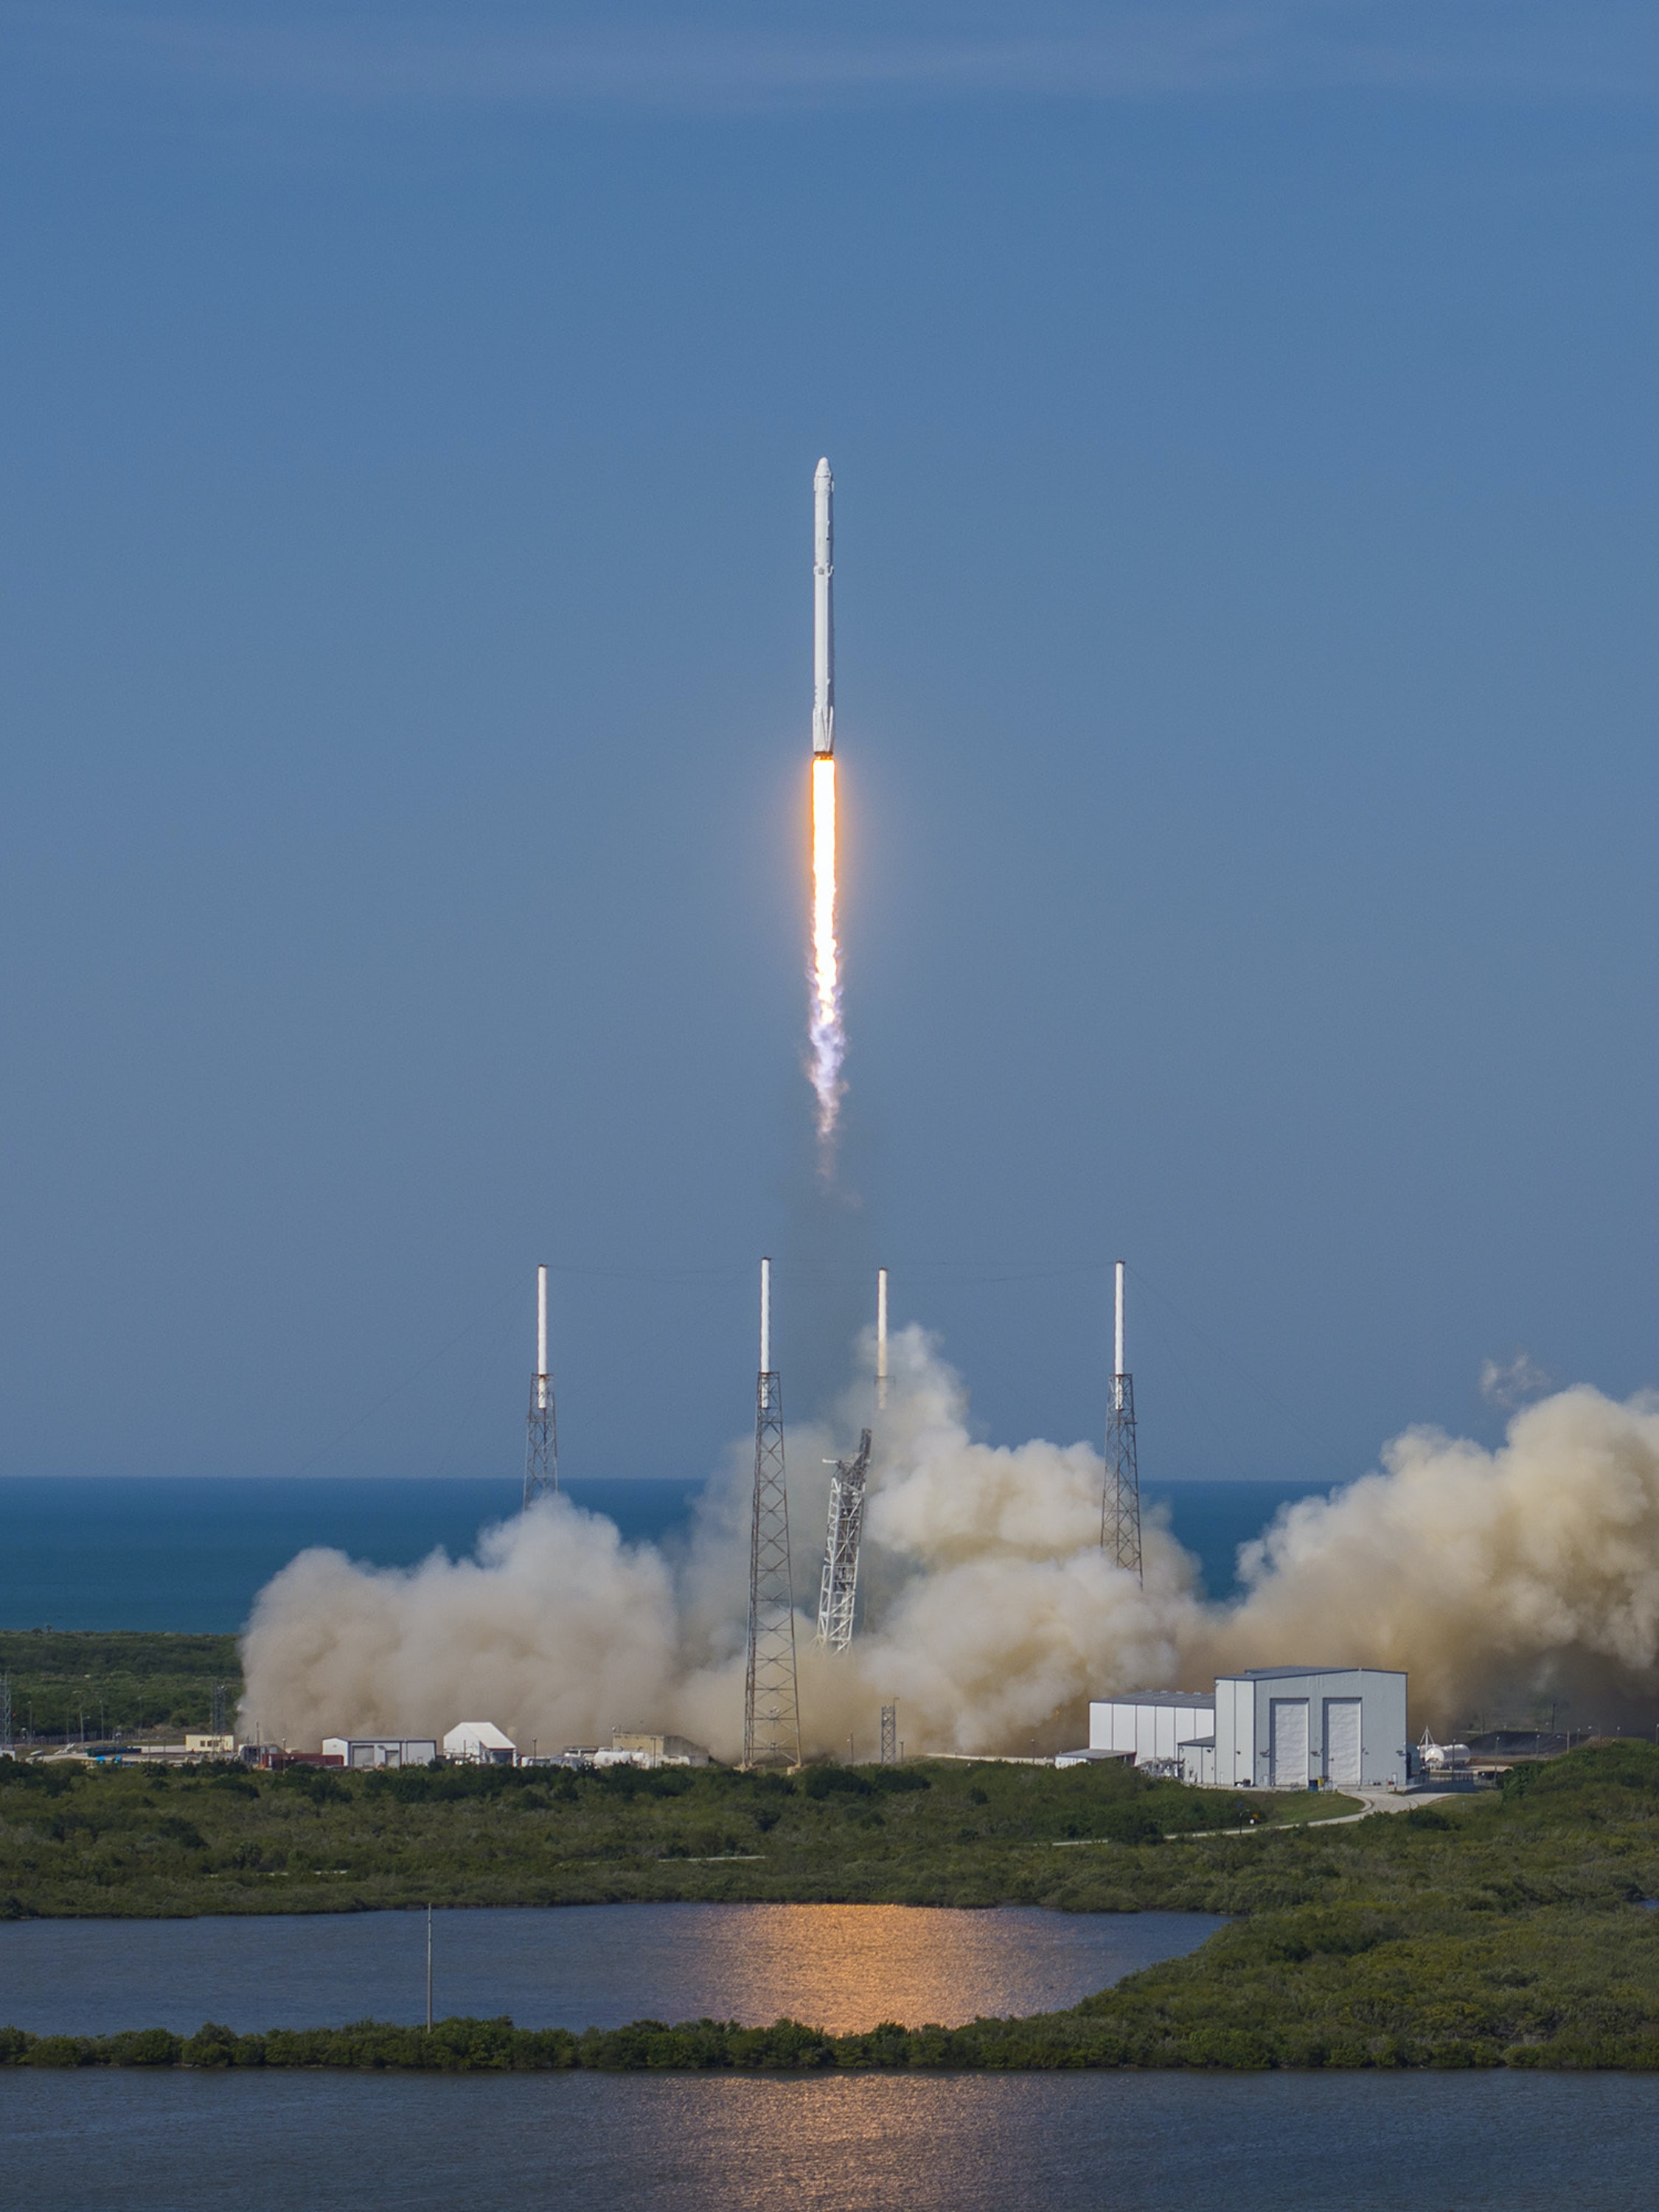 CAPE CANAVERAL, FL - APRIL 8: In this handout provided by the National Aeronautics and Space Administration (NASA), SpaceXs Falcon 9 rocket and Dragon spacecraft lift off from Launch Complex 40 at the Cape Canaveral Air Force Station for their eighth official Commercial Resupply (CRS) mission on April 8, 2016 in Cape Canaveral, Florida. (Photo by NASA via Getty Images)